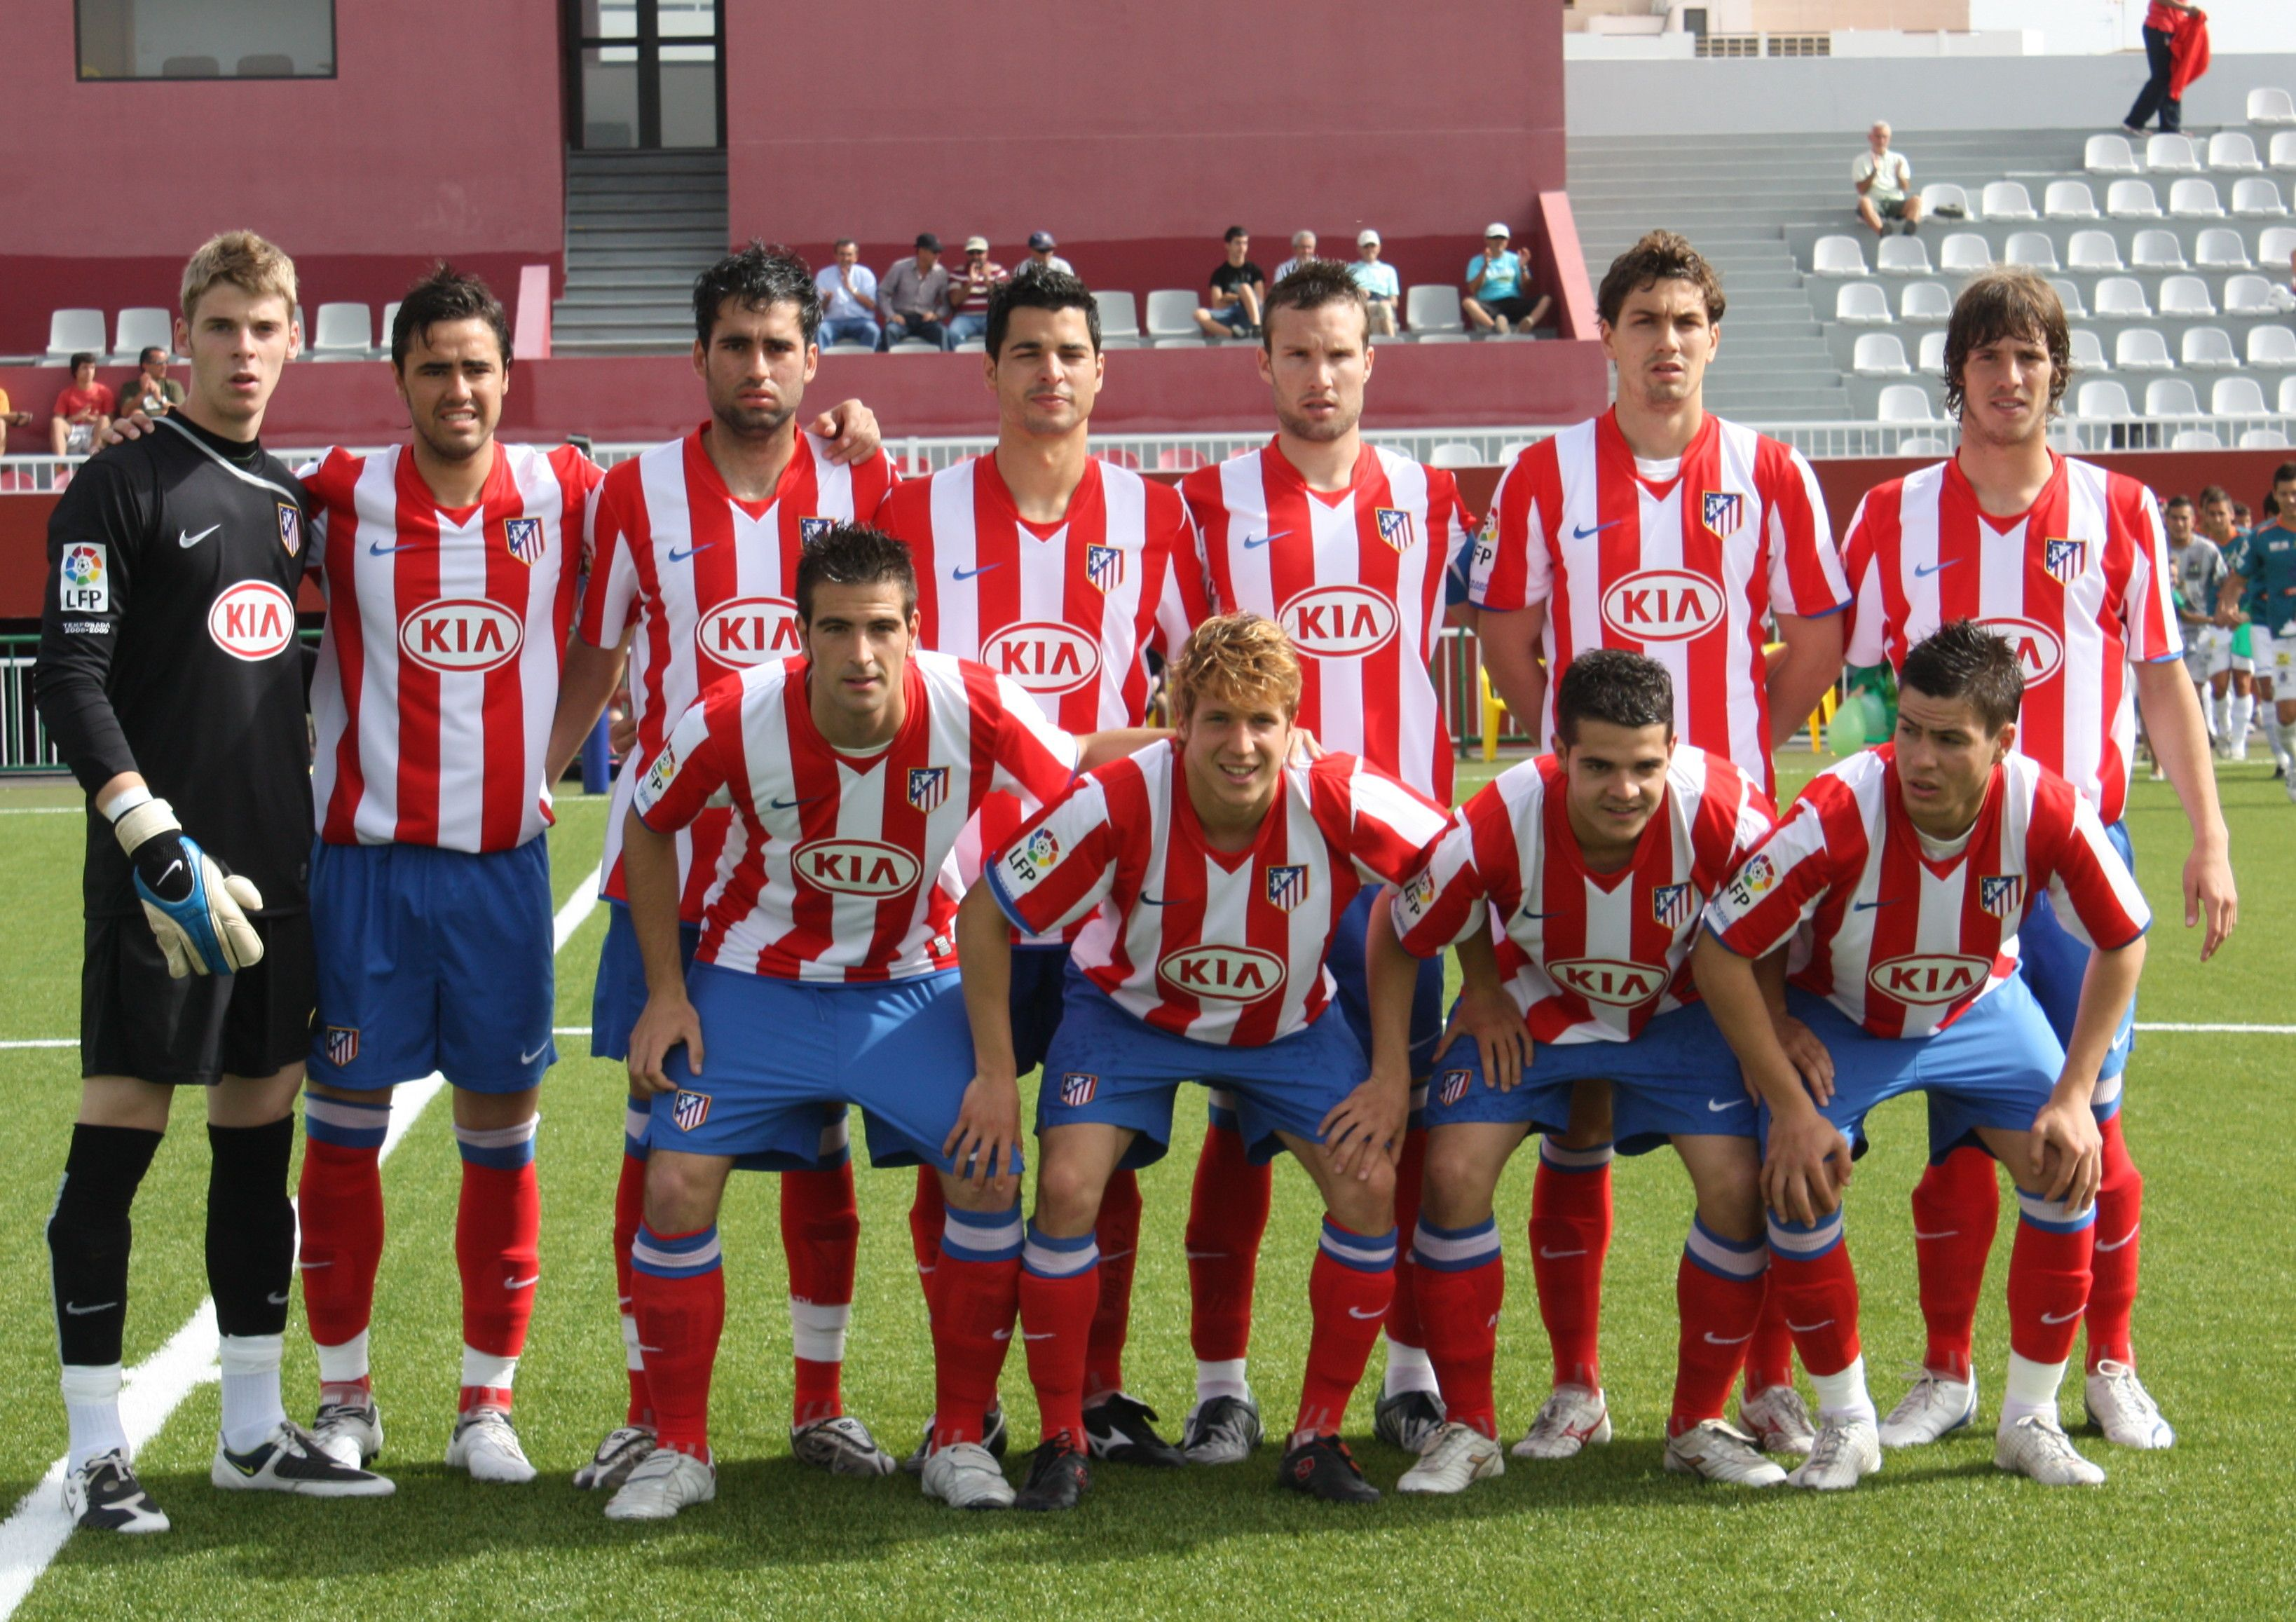 Atltico madrid b before a game maillot atltico madrid pinterest atltico madrid b before a game voltagebd Gallery